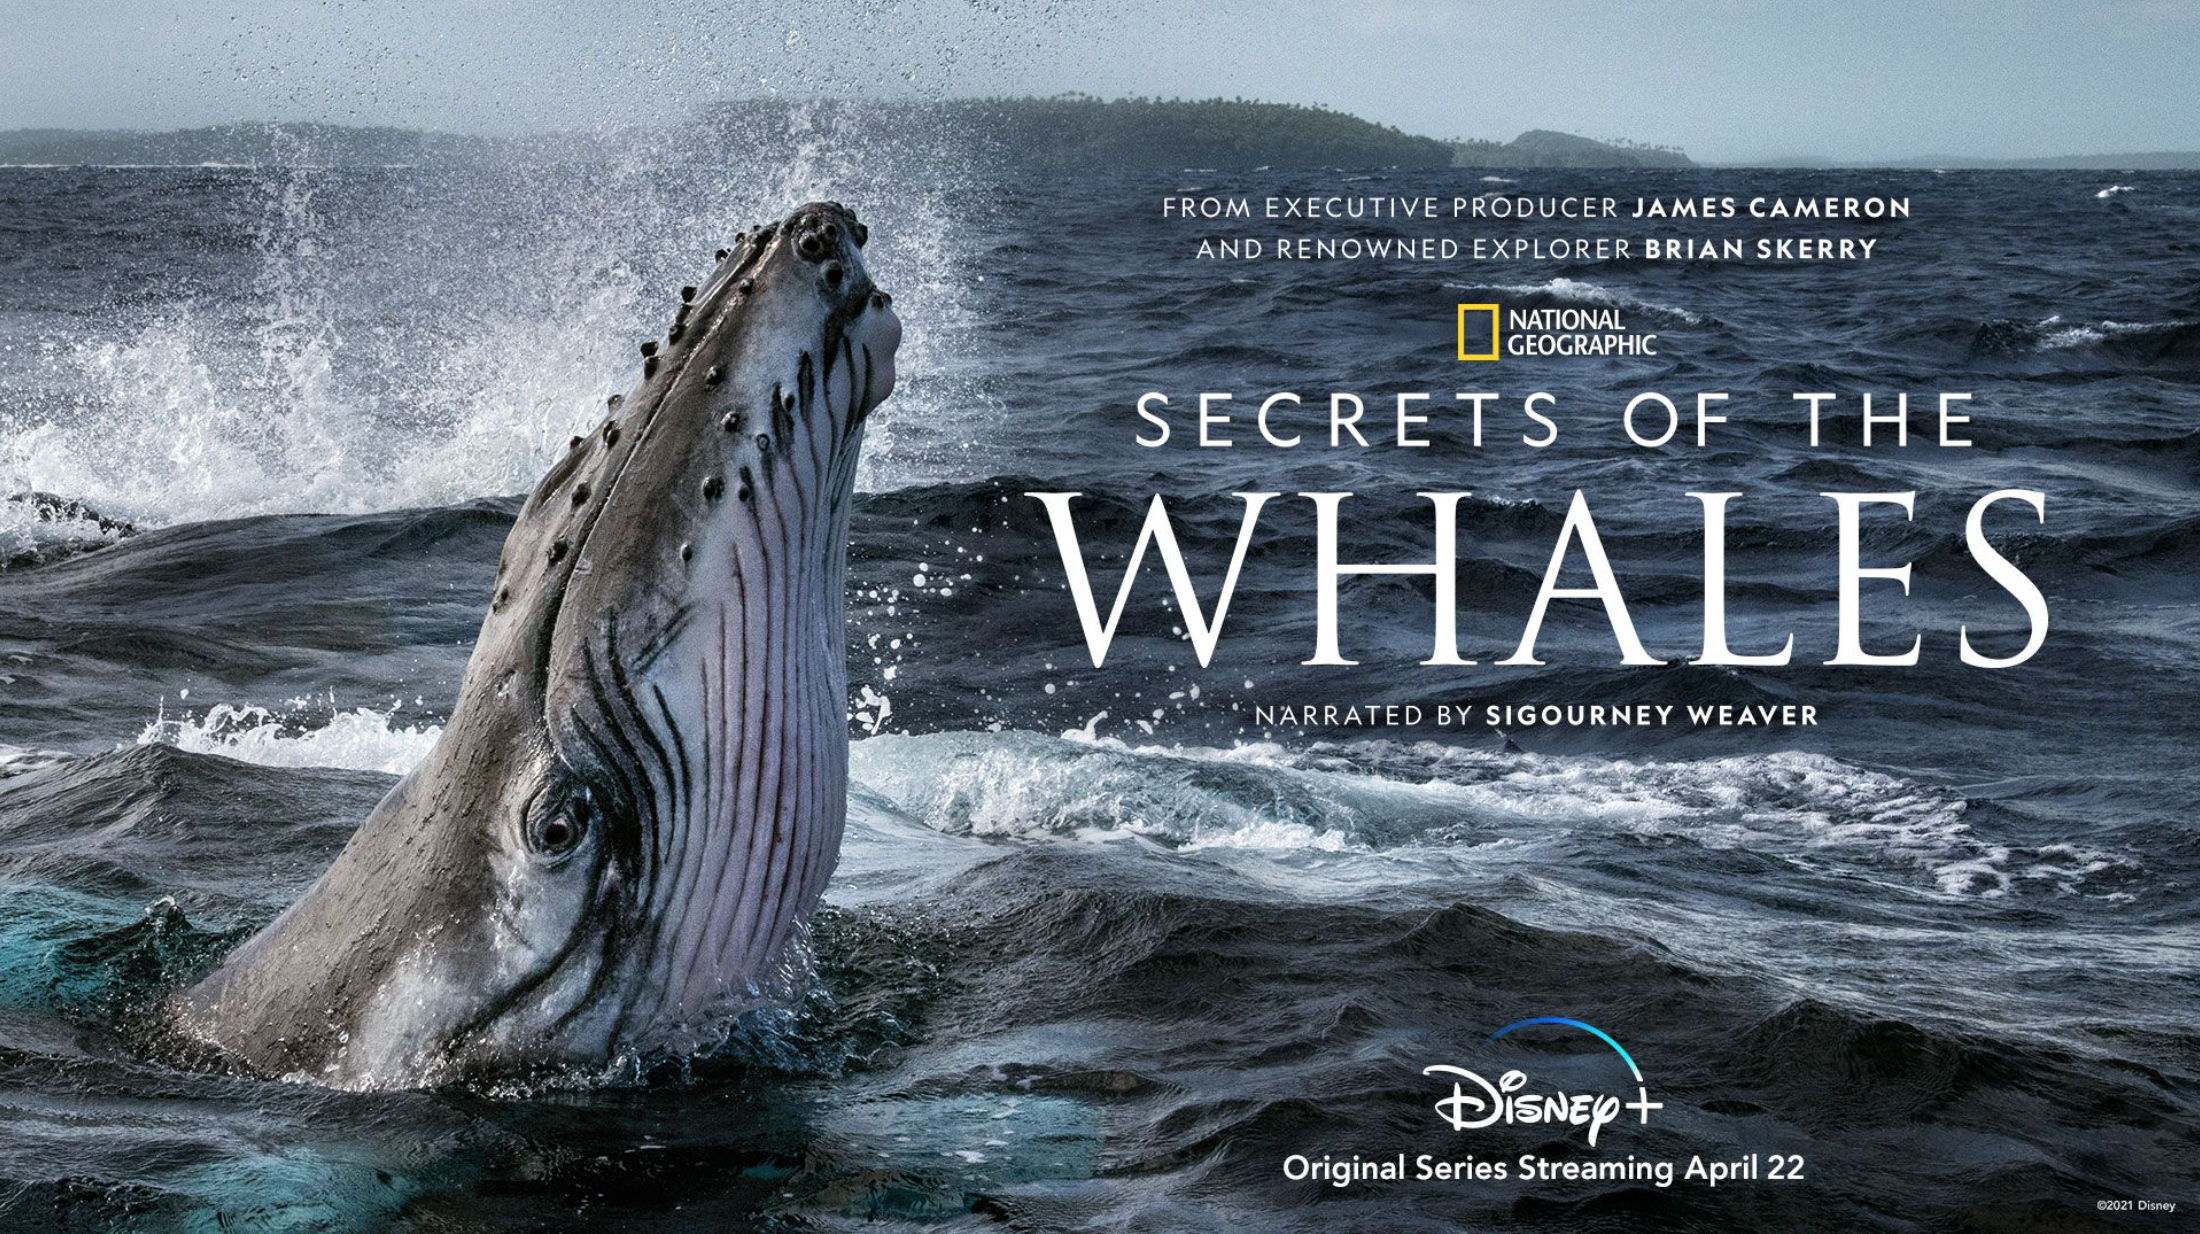 Exclusive: 'Secrets of the Whales' creator Brian Skerry on filming his stunning new docu-series for Nat Geo | Space